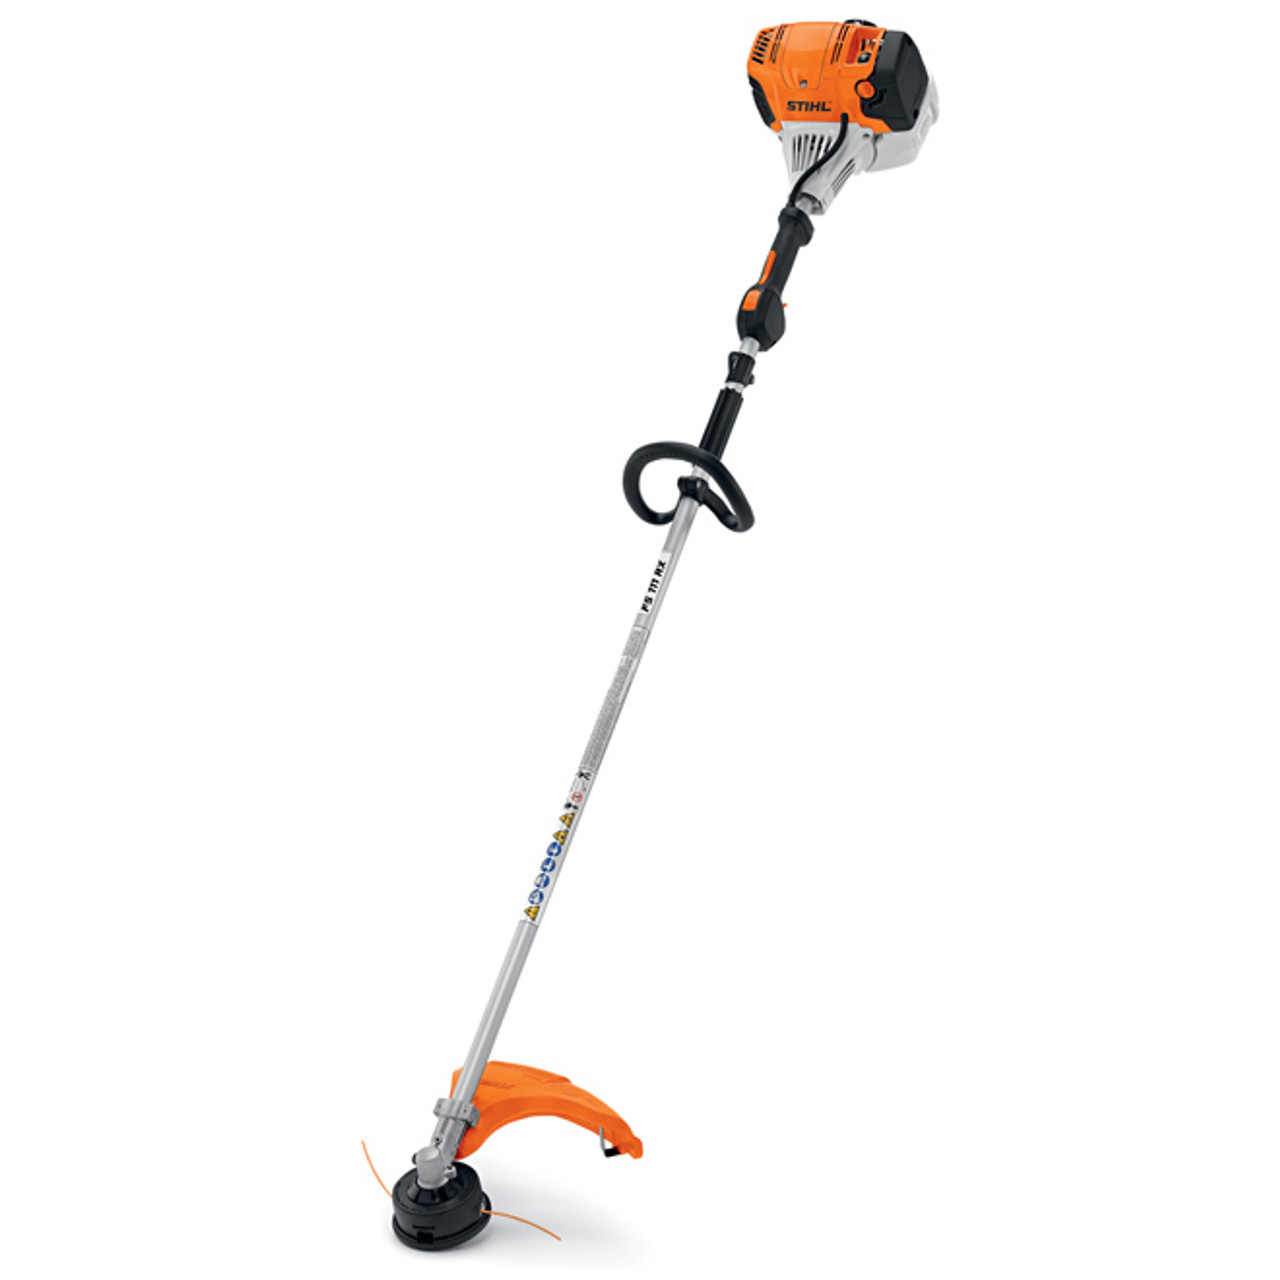 STIHL FS 111 RX 31.4cc Commercial Straight Flex Shaft String Trimmer Image